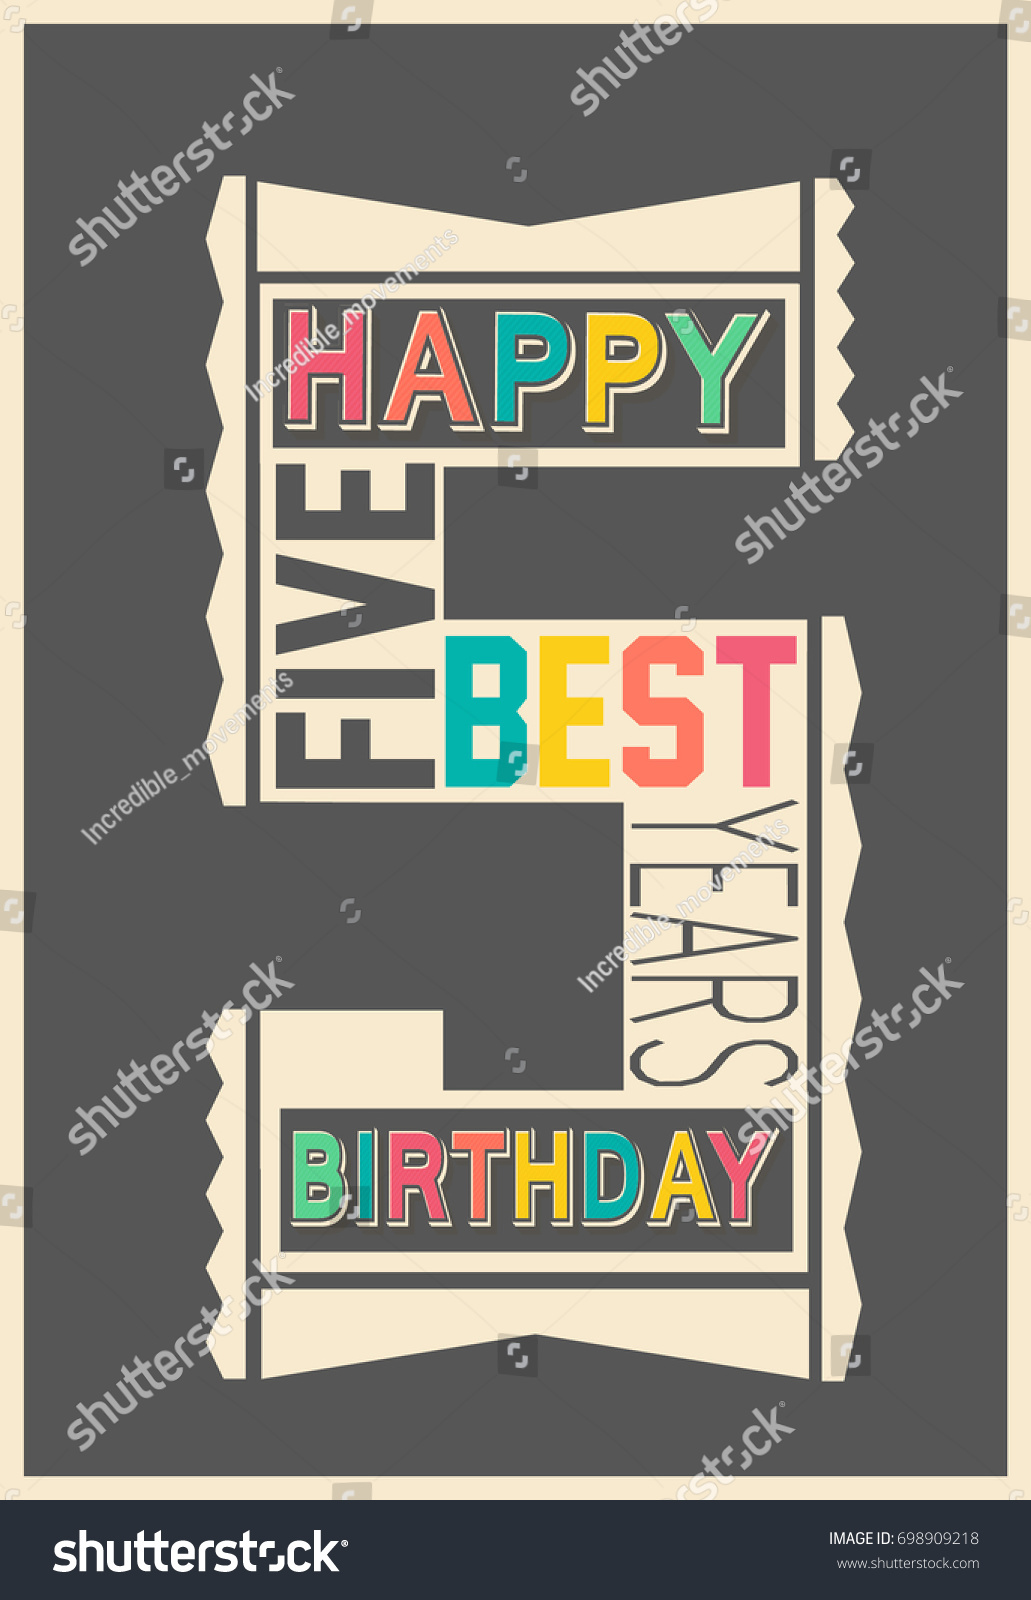 best dating happy birthday images gift